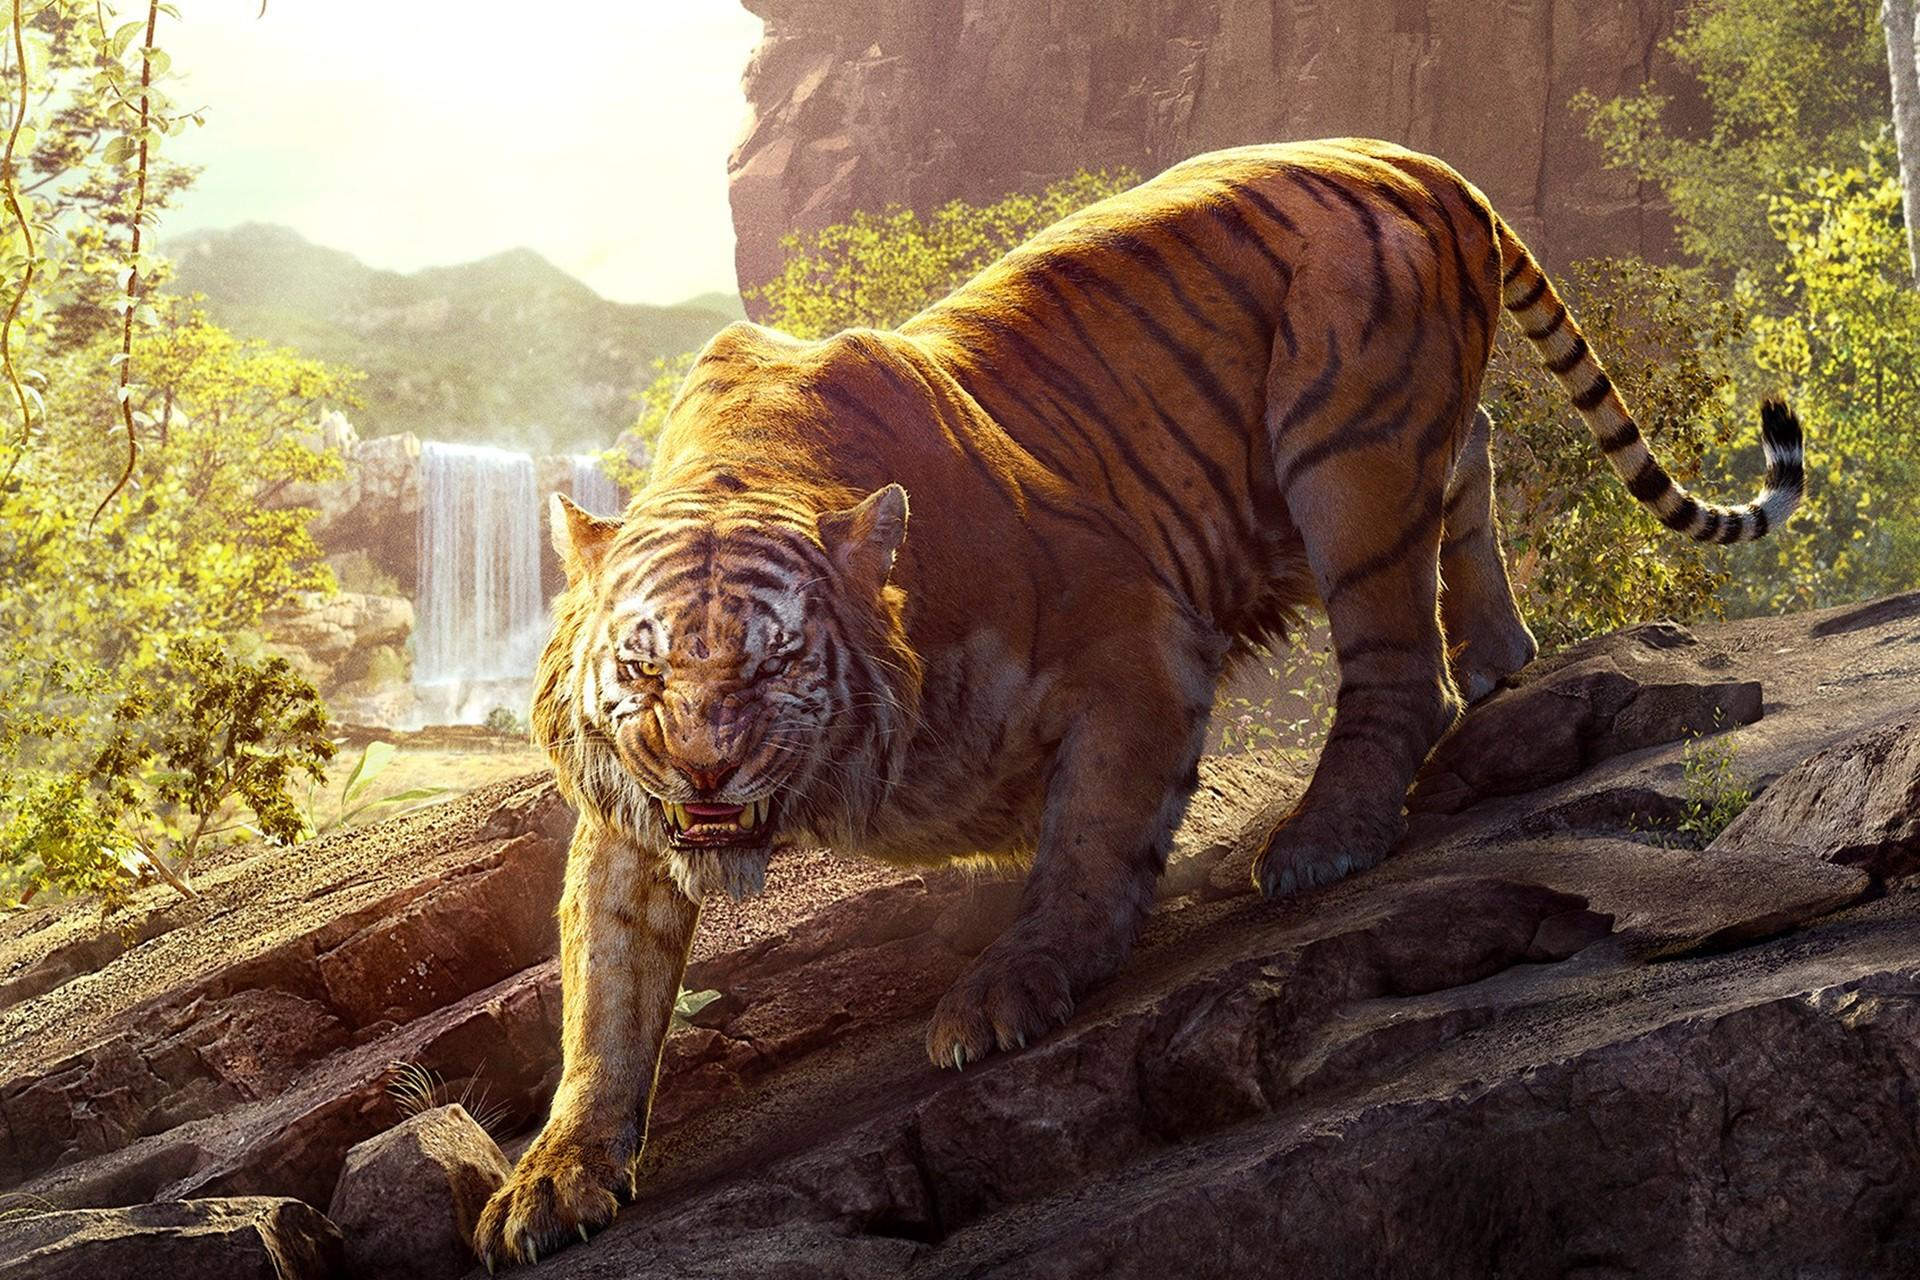 Tiger Wallpaper Wallpapers For Free Download About